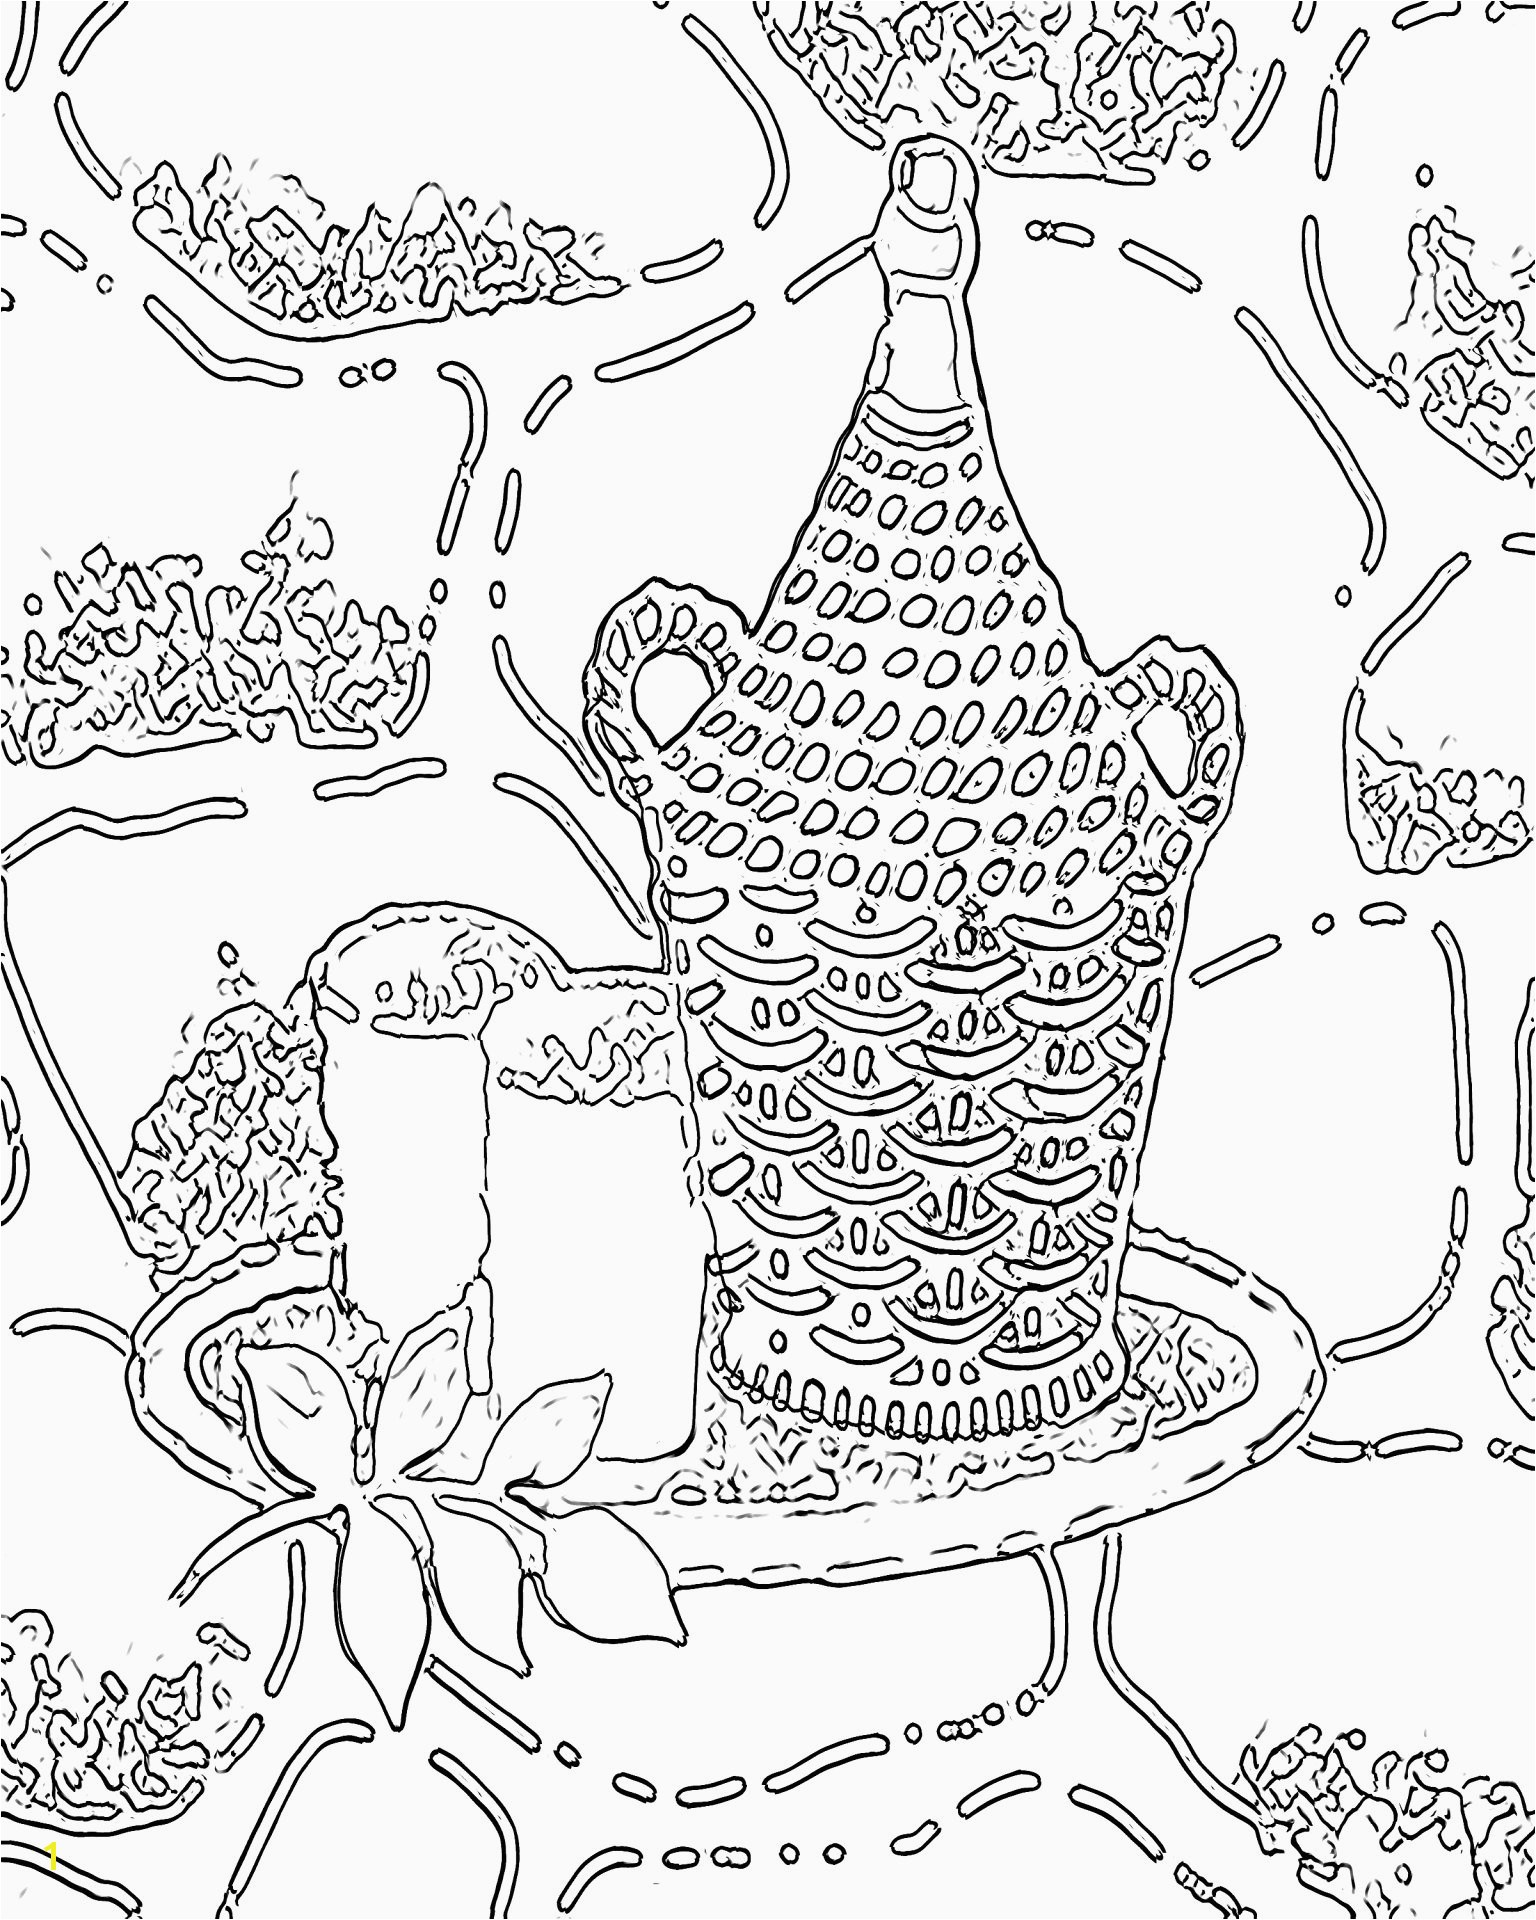 Free Coloring Pages Of Roses and Heart Beautiful Coloring Pages for Hearts and Roses Katesgrove